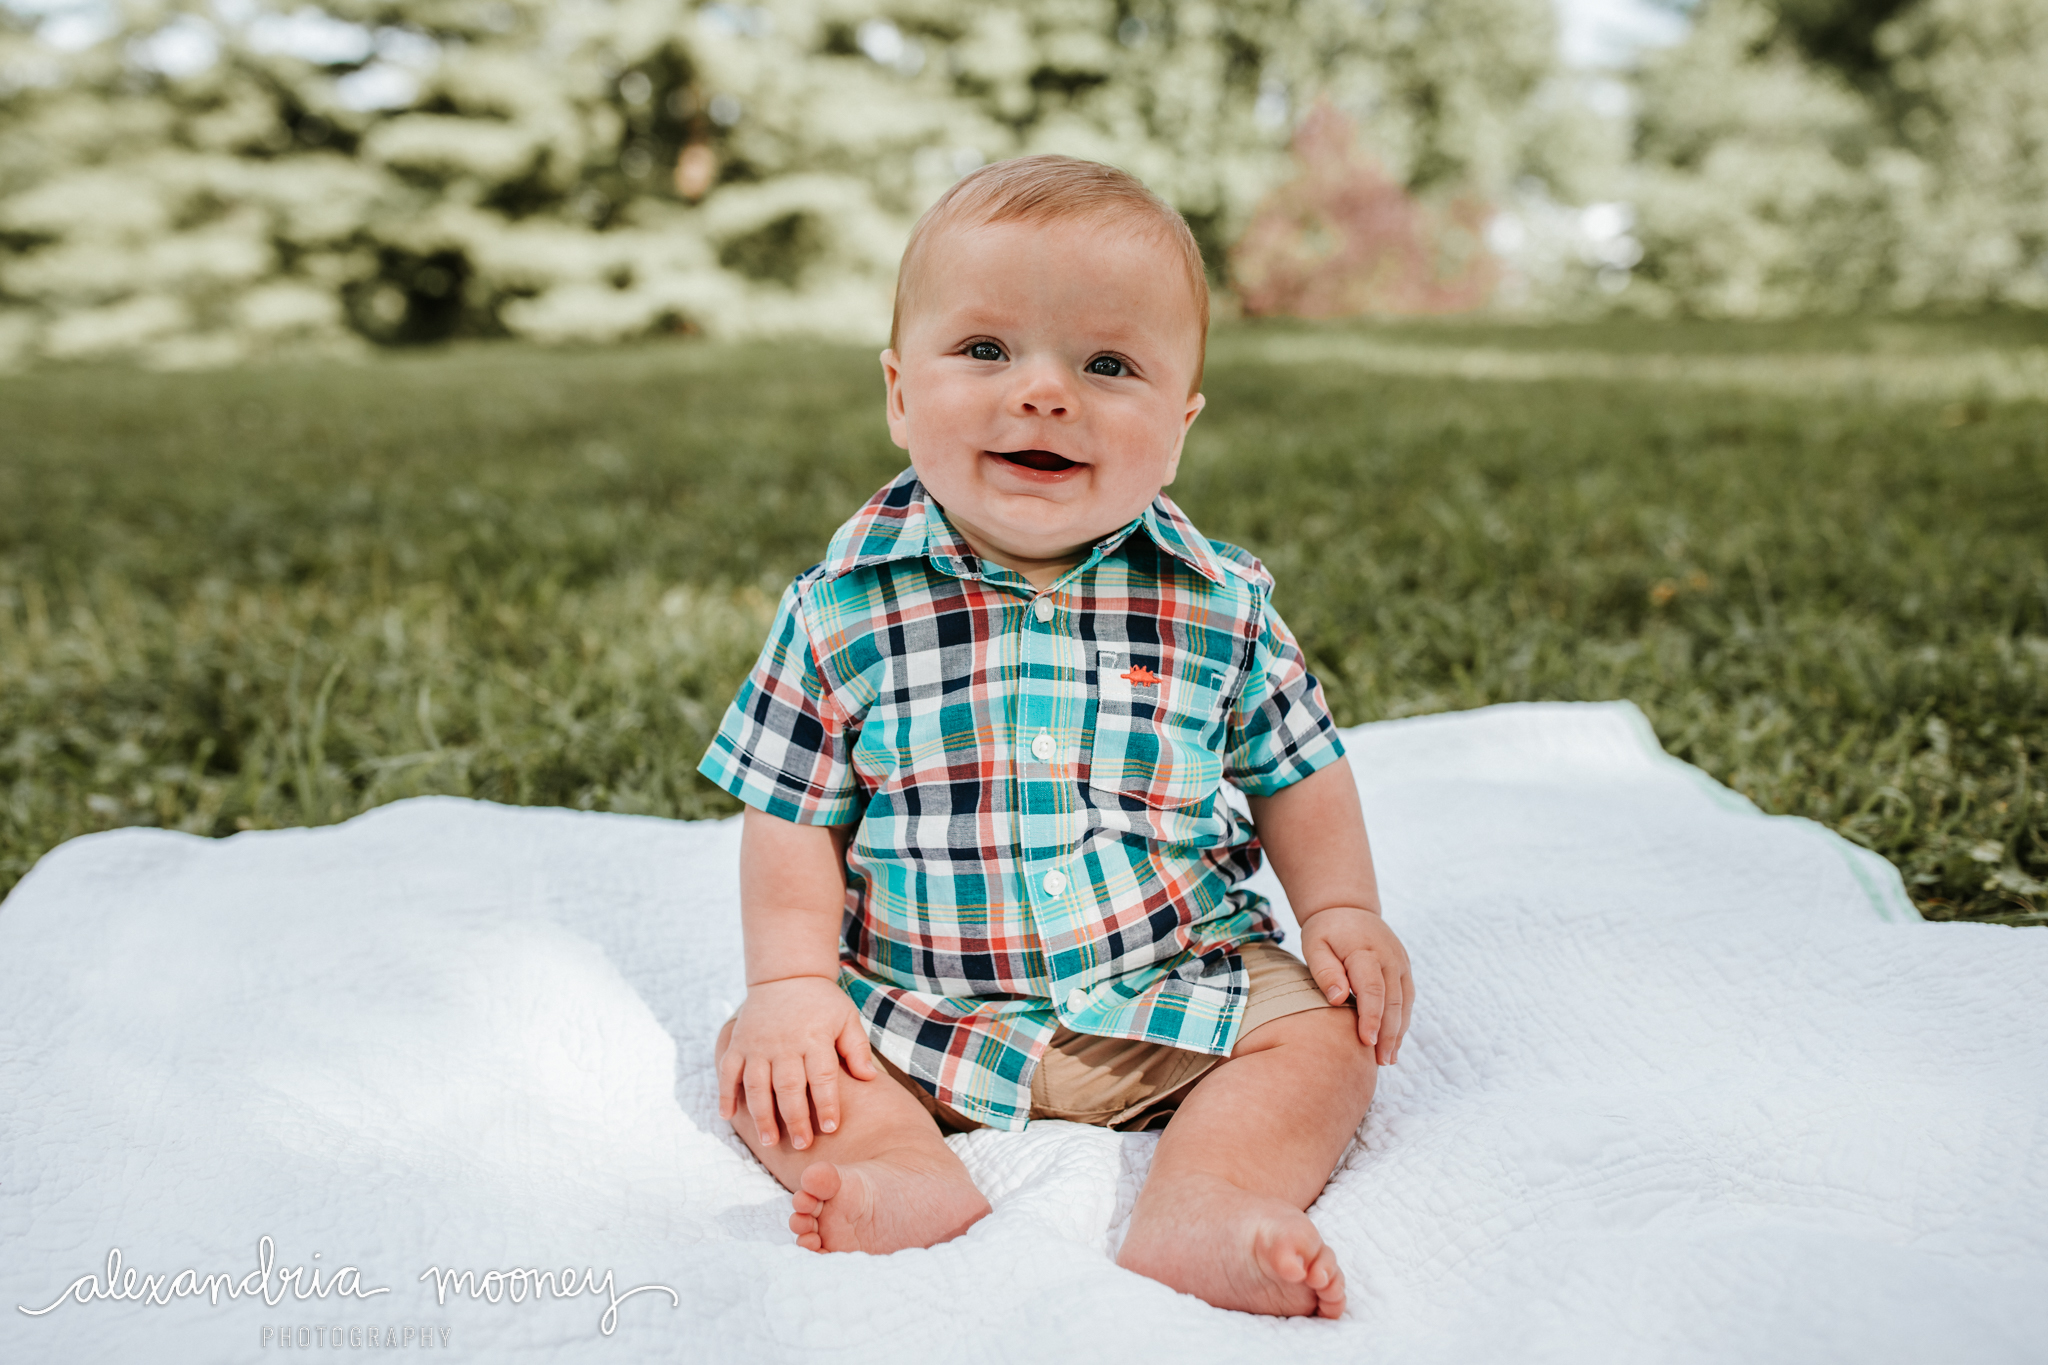 Connor_6monthsold_WATERMARKED-12.jpg